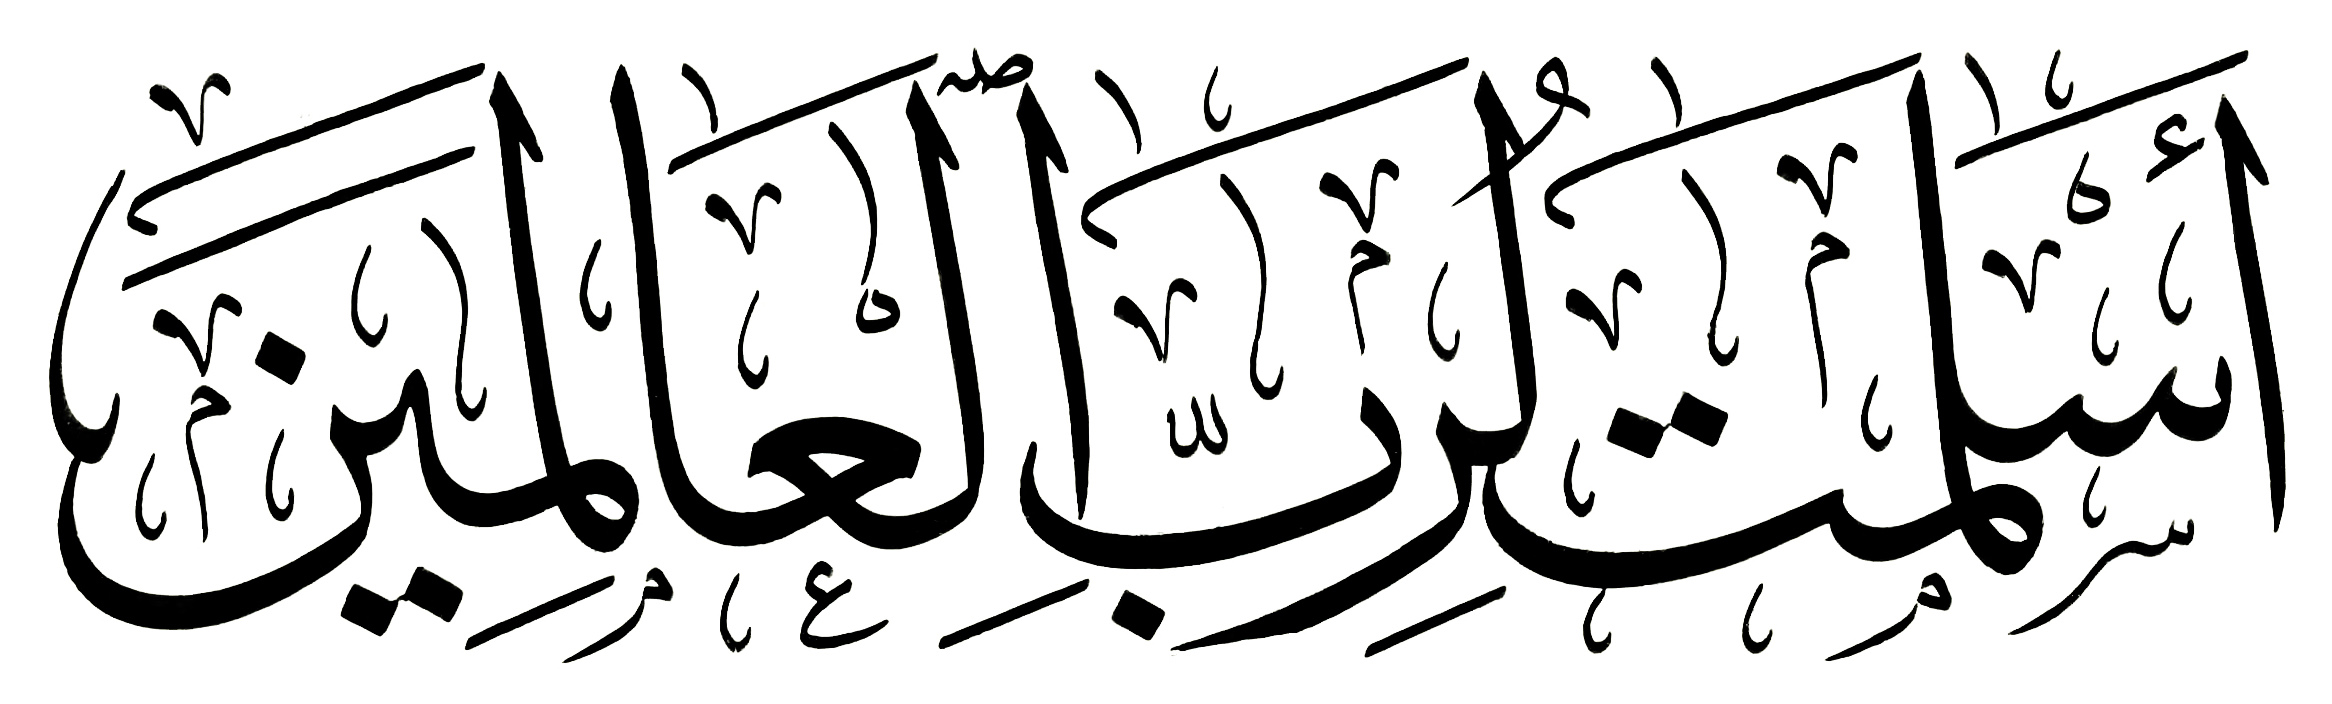 Islamic calligraphy coloring pages Calligraphy pages